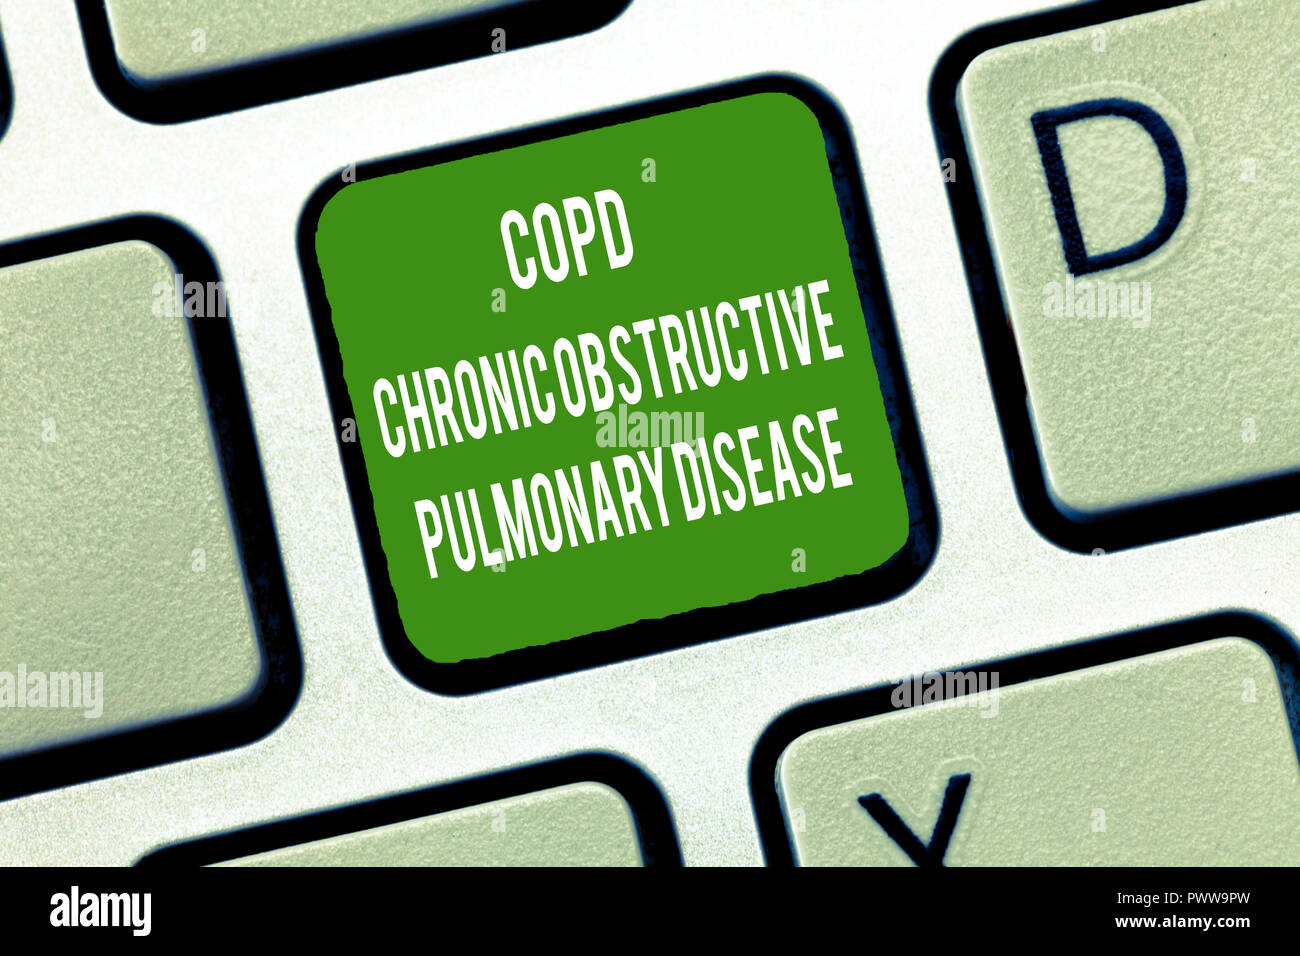 Text sign showing Copd Chronic Obstructive Pulmonary Disease. Conceptual photo Lung disease Difficulty to breath. - Stock Image